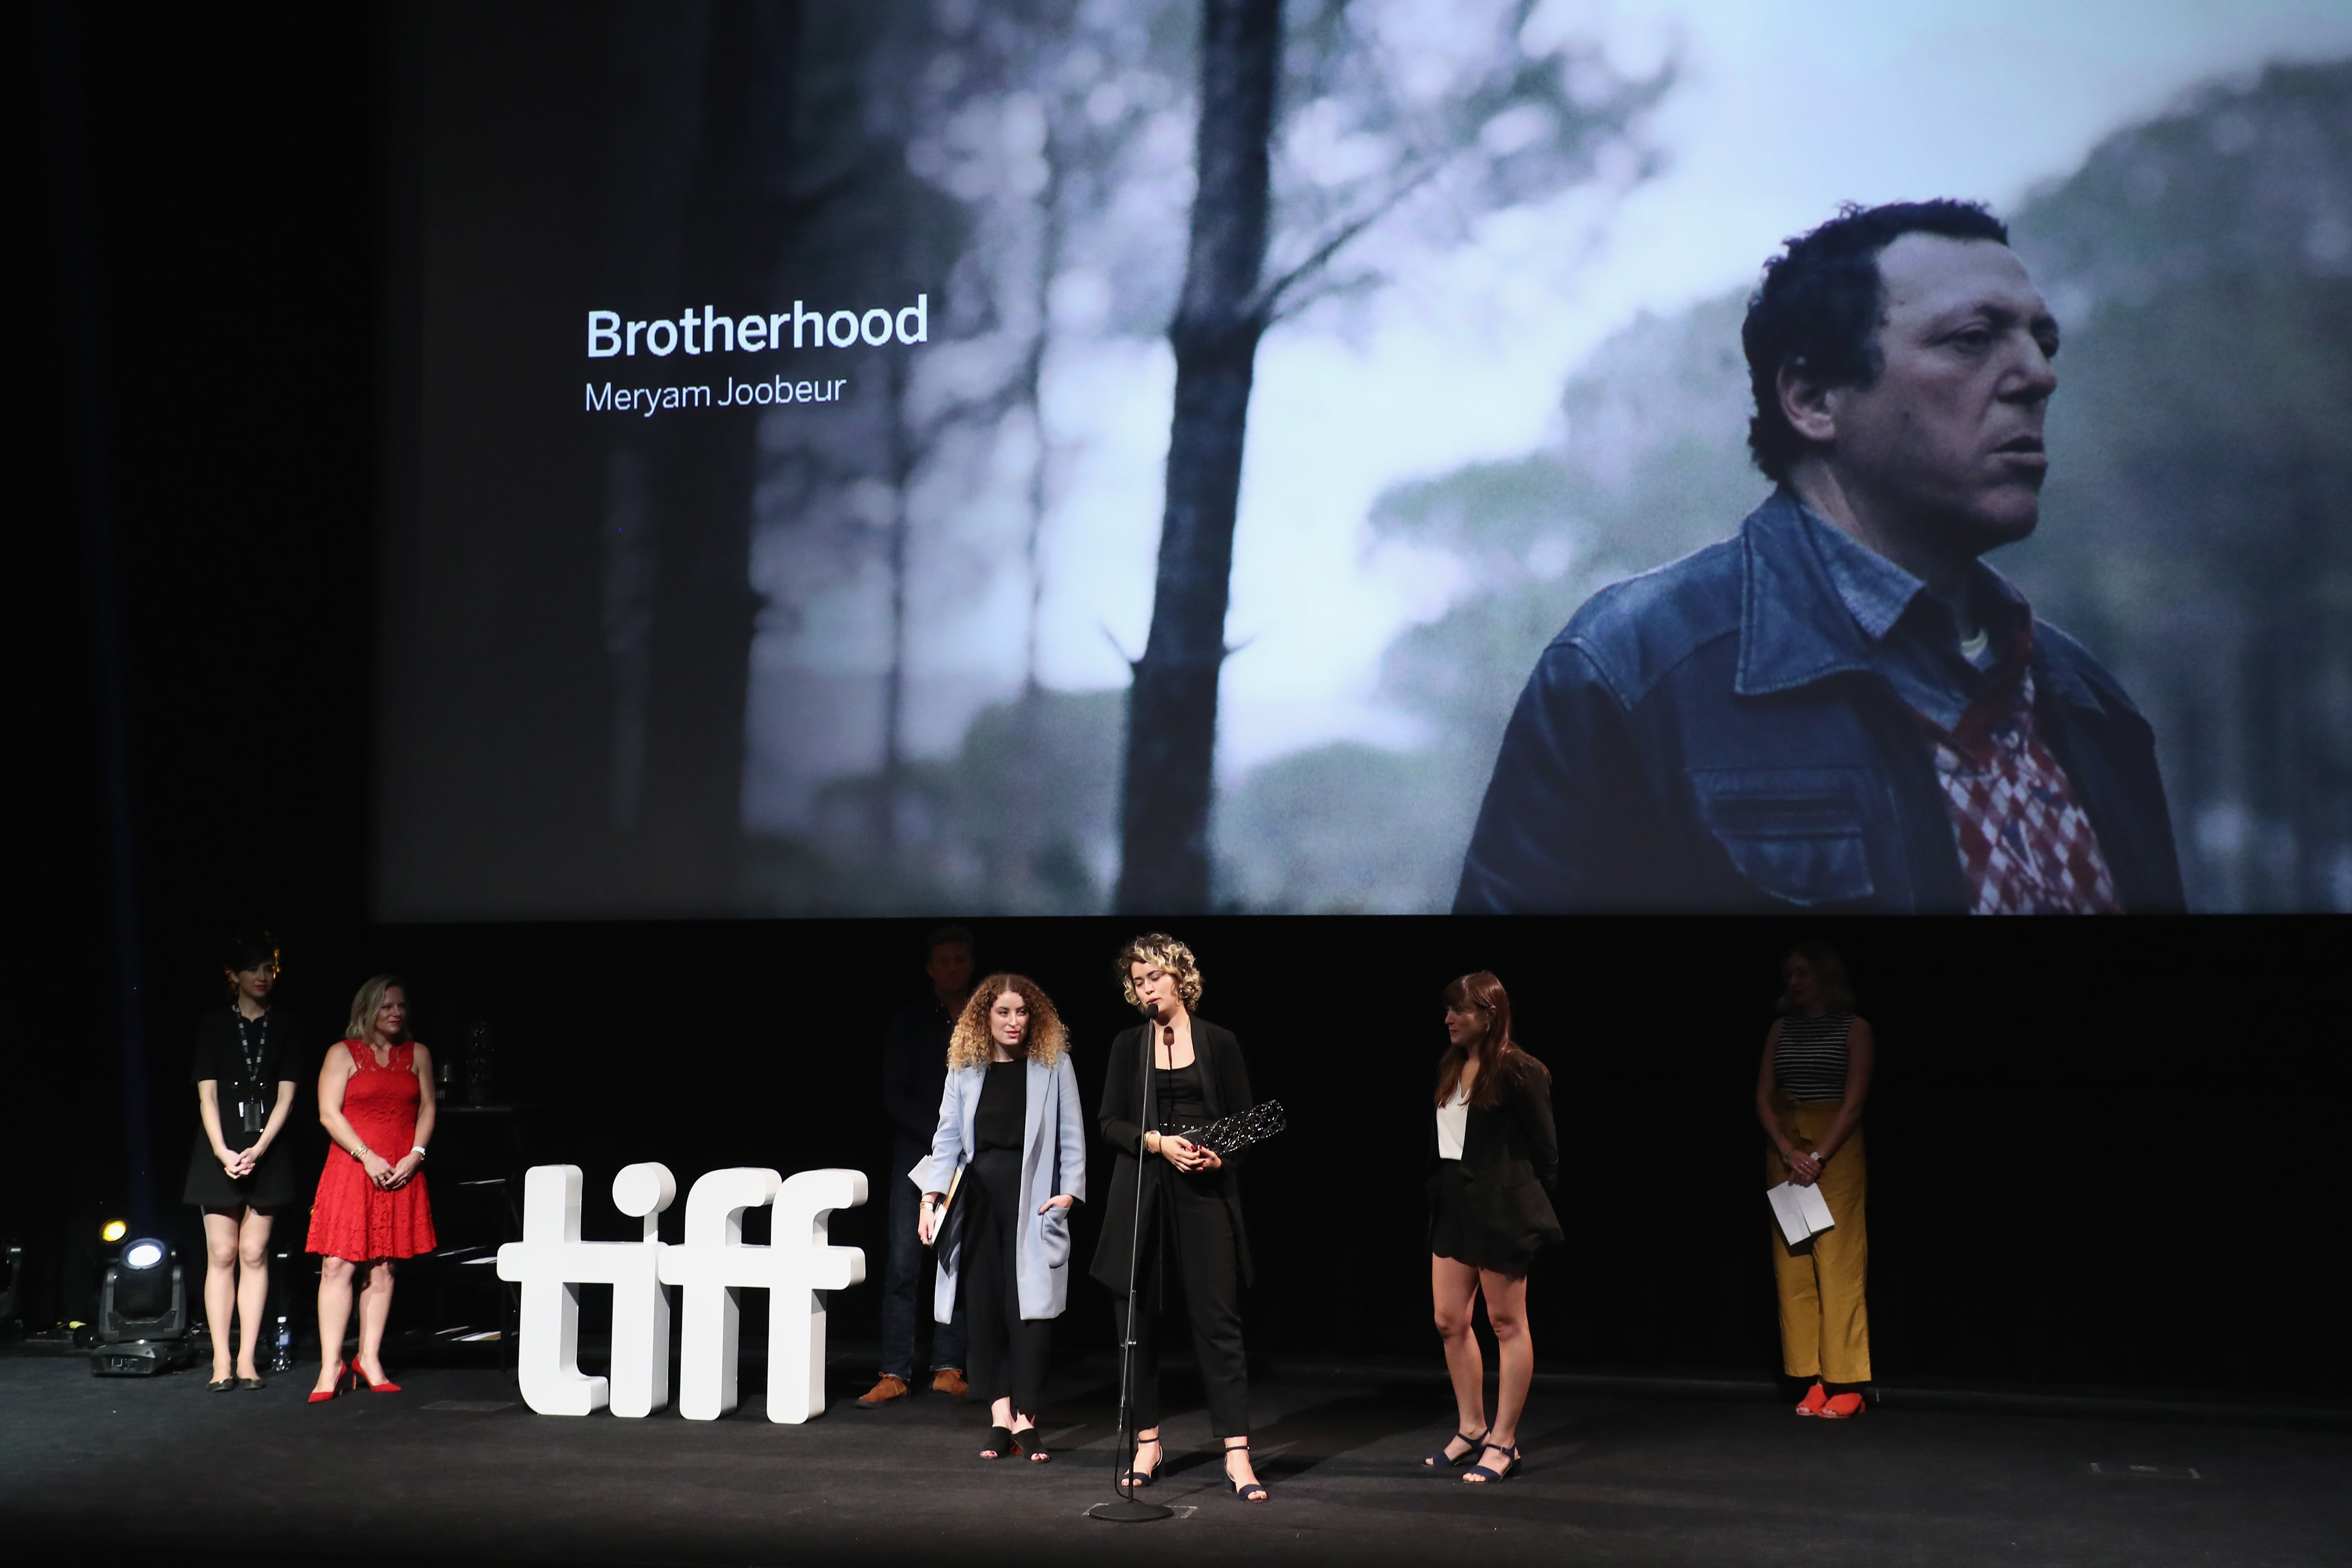 Brotherhood at Toronto International Film Festival